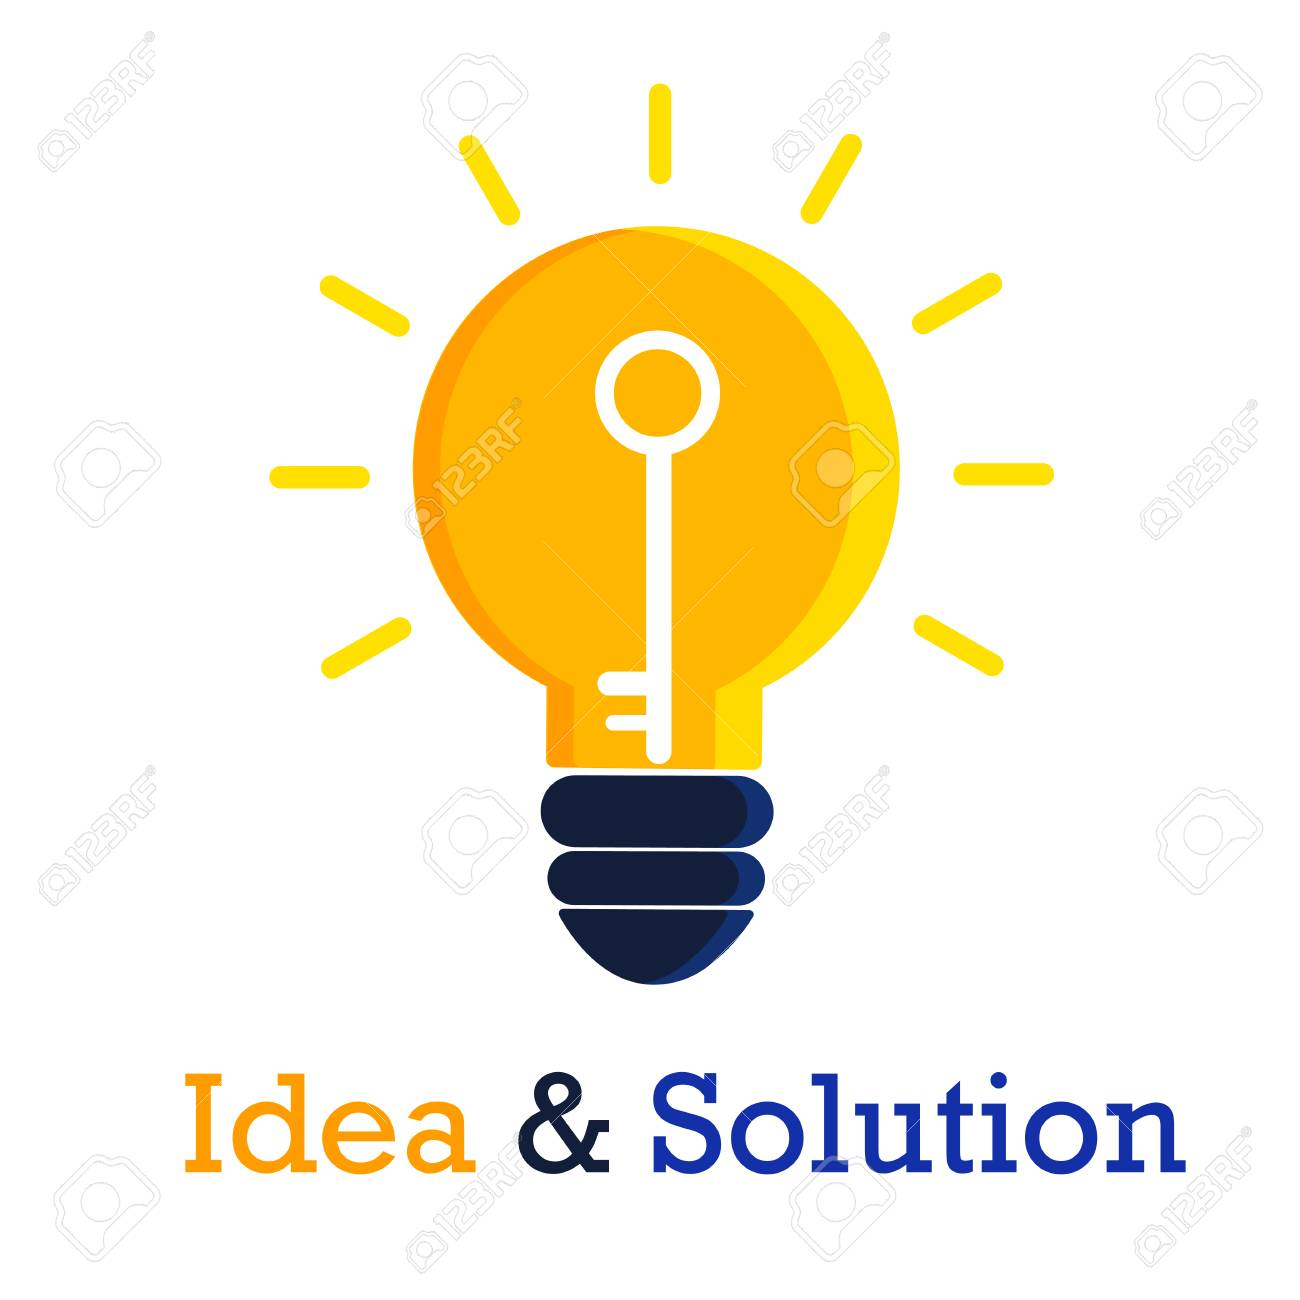 idea and solution icon design on white background royalty free